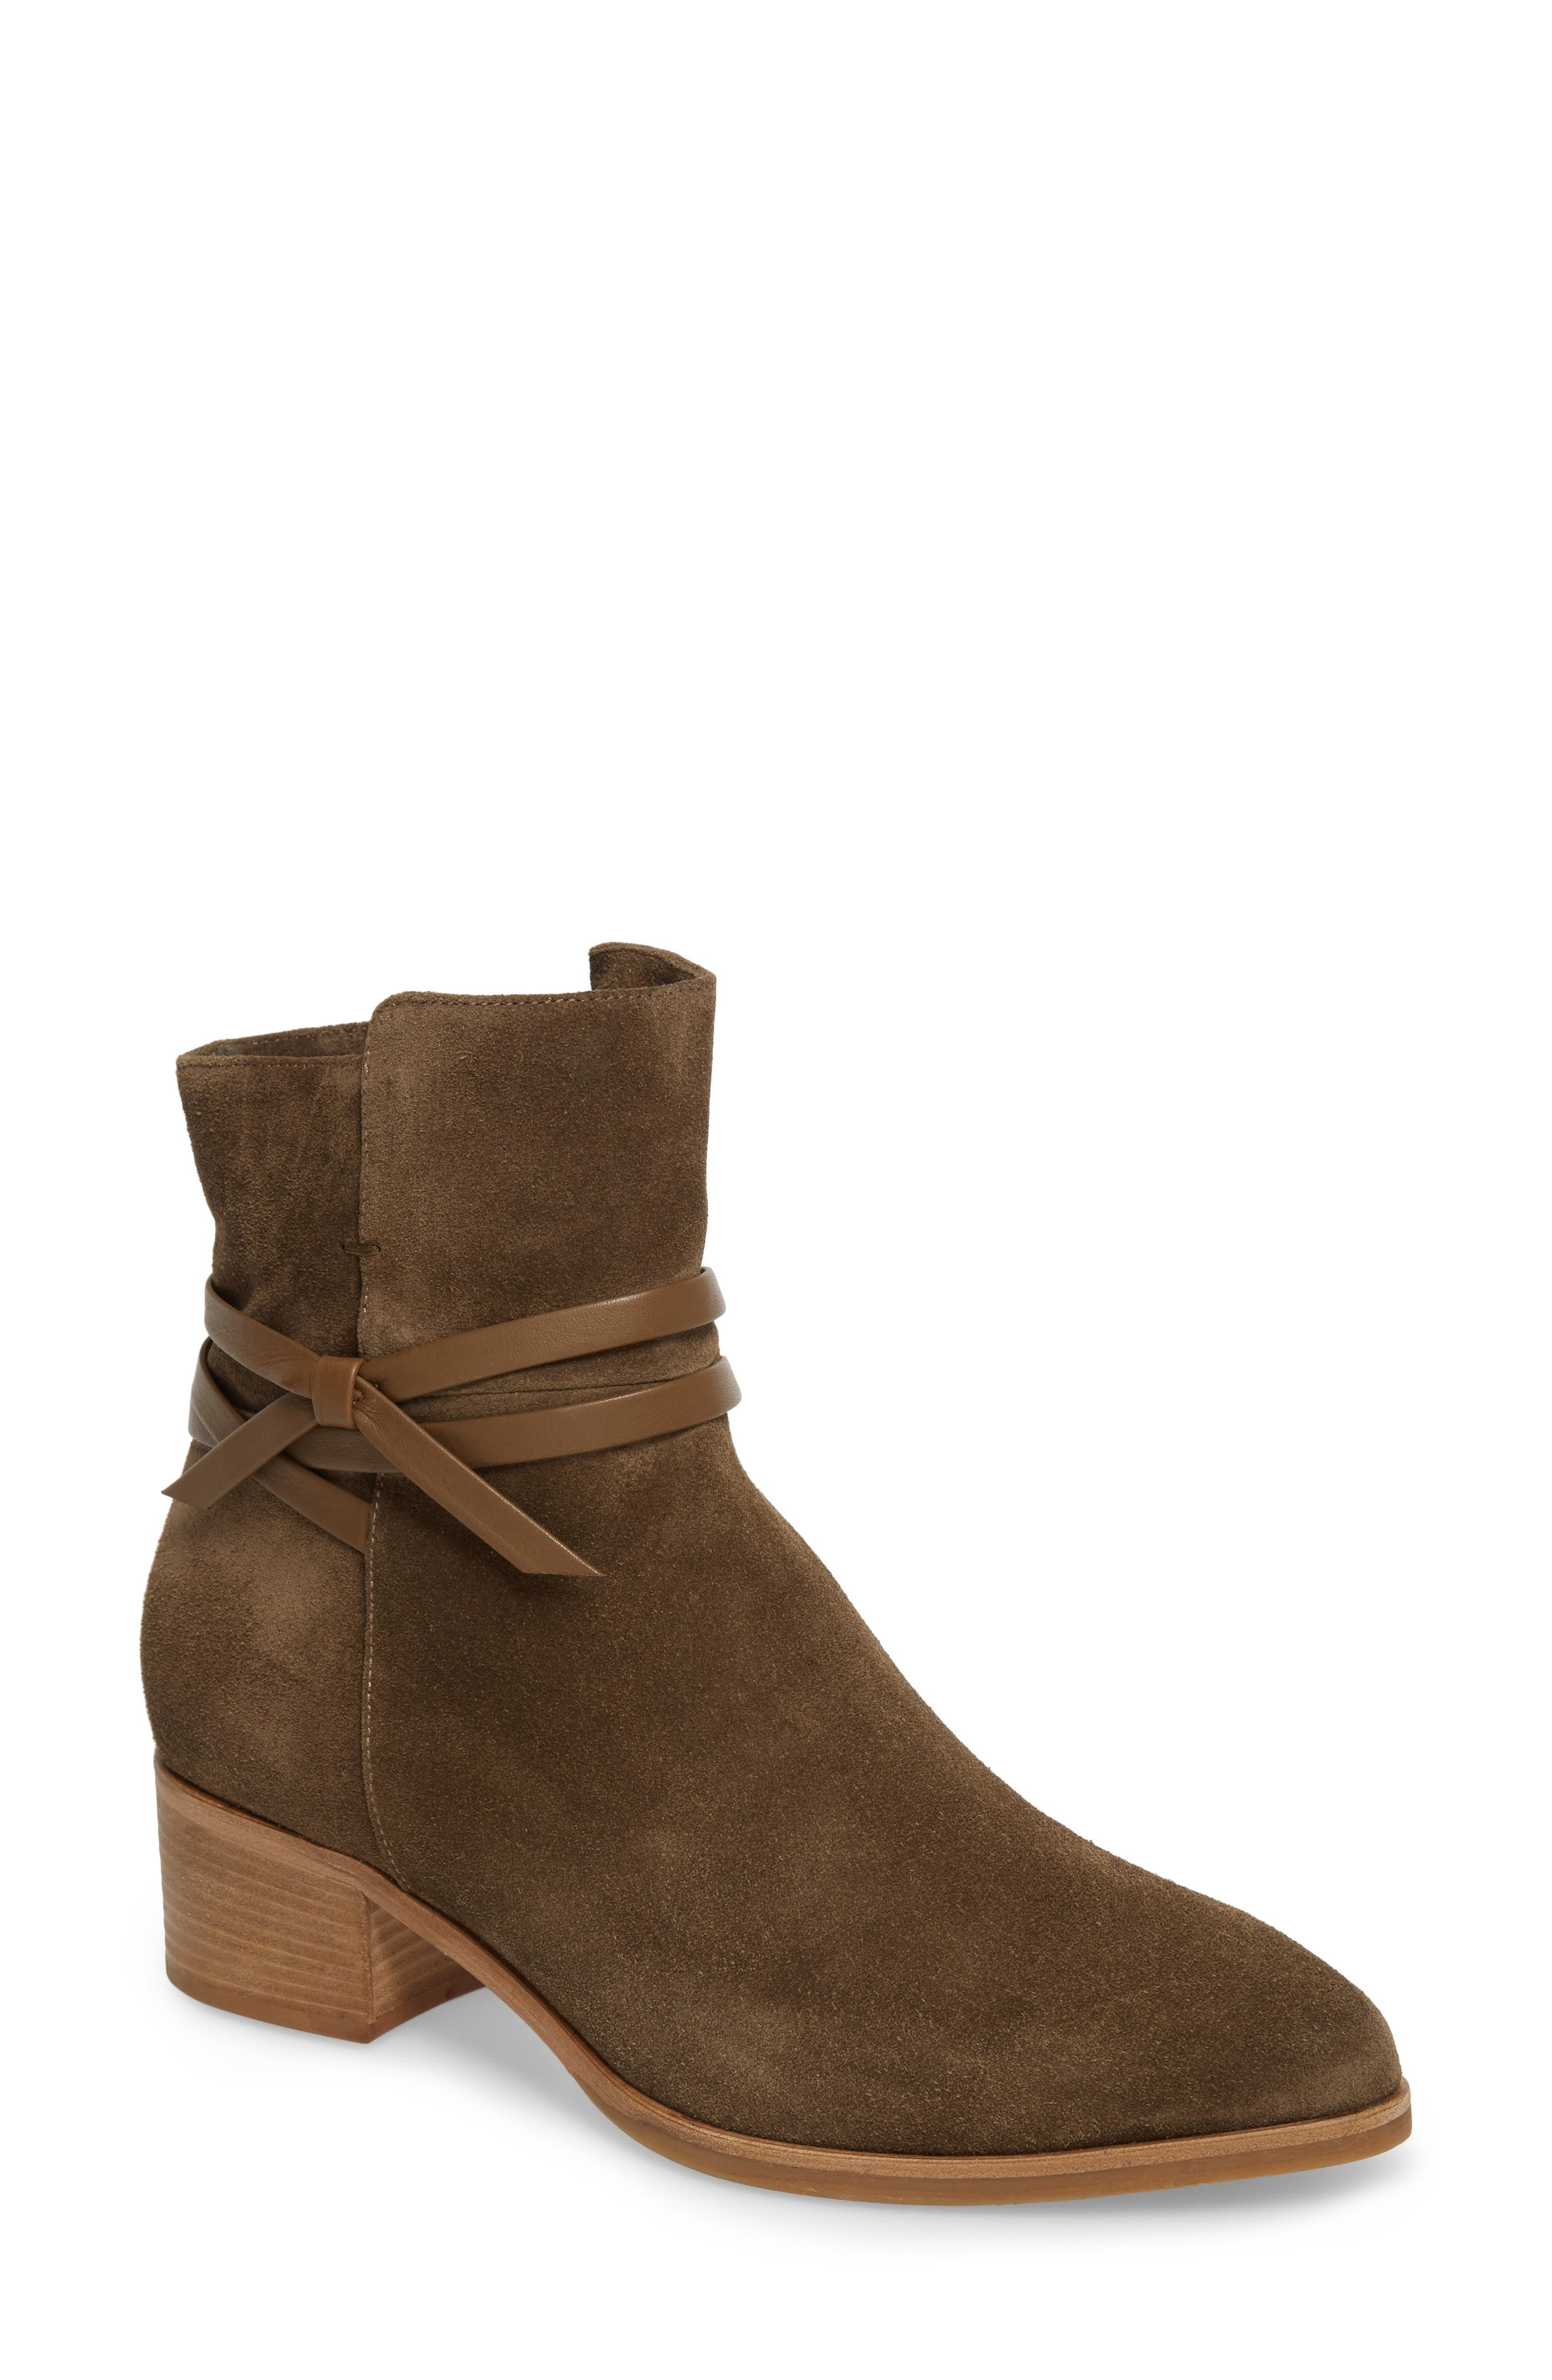 Donata Water-Resistant Bootie,                         Main,                         color, 340